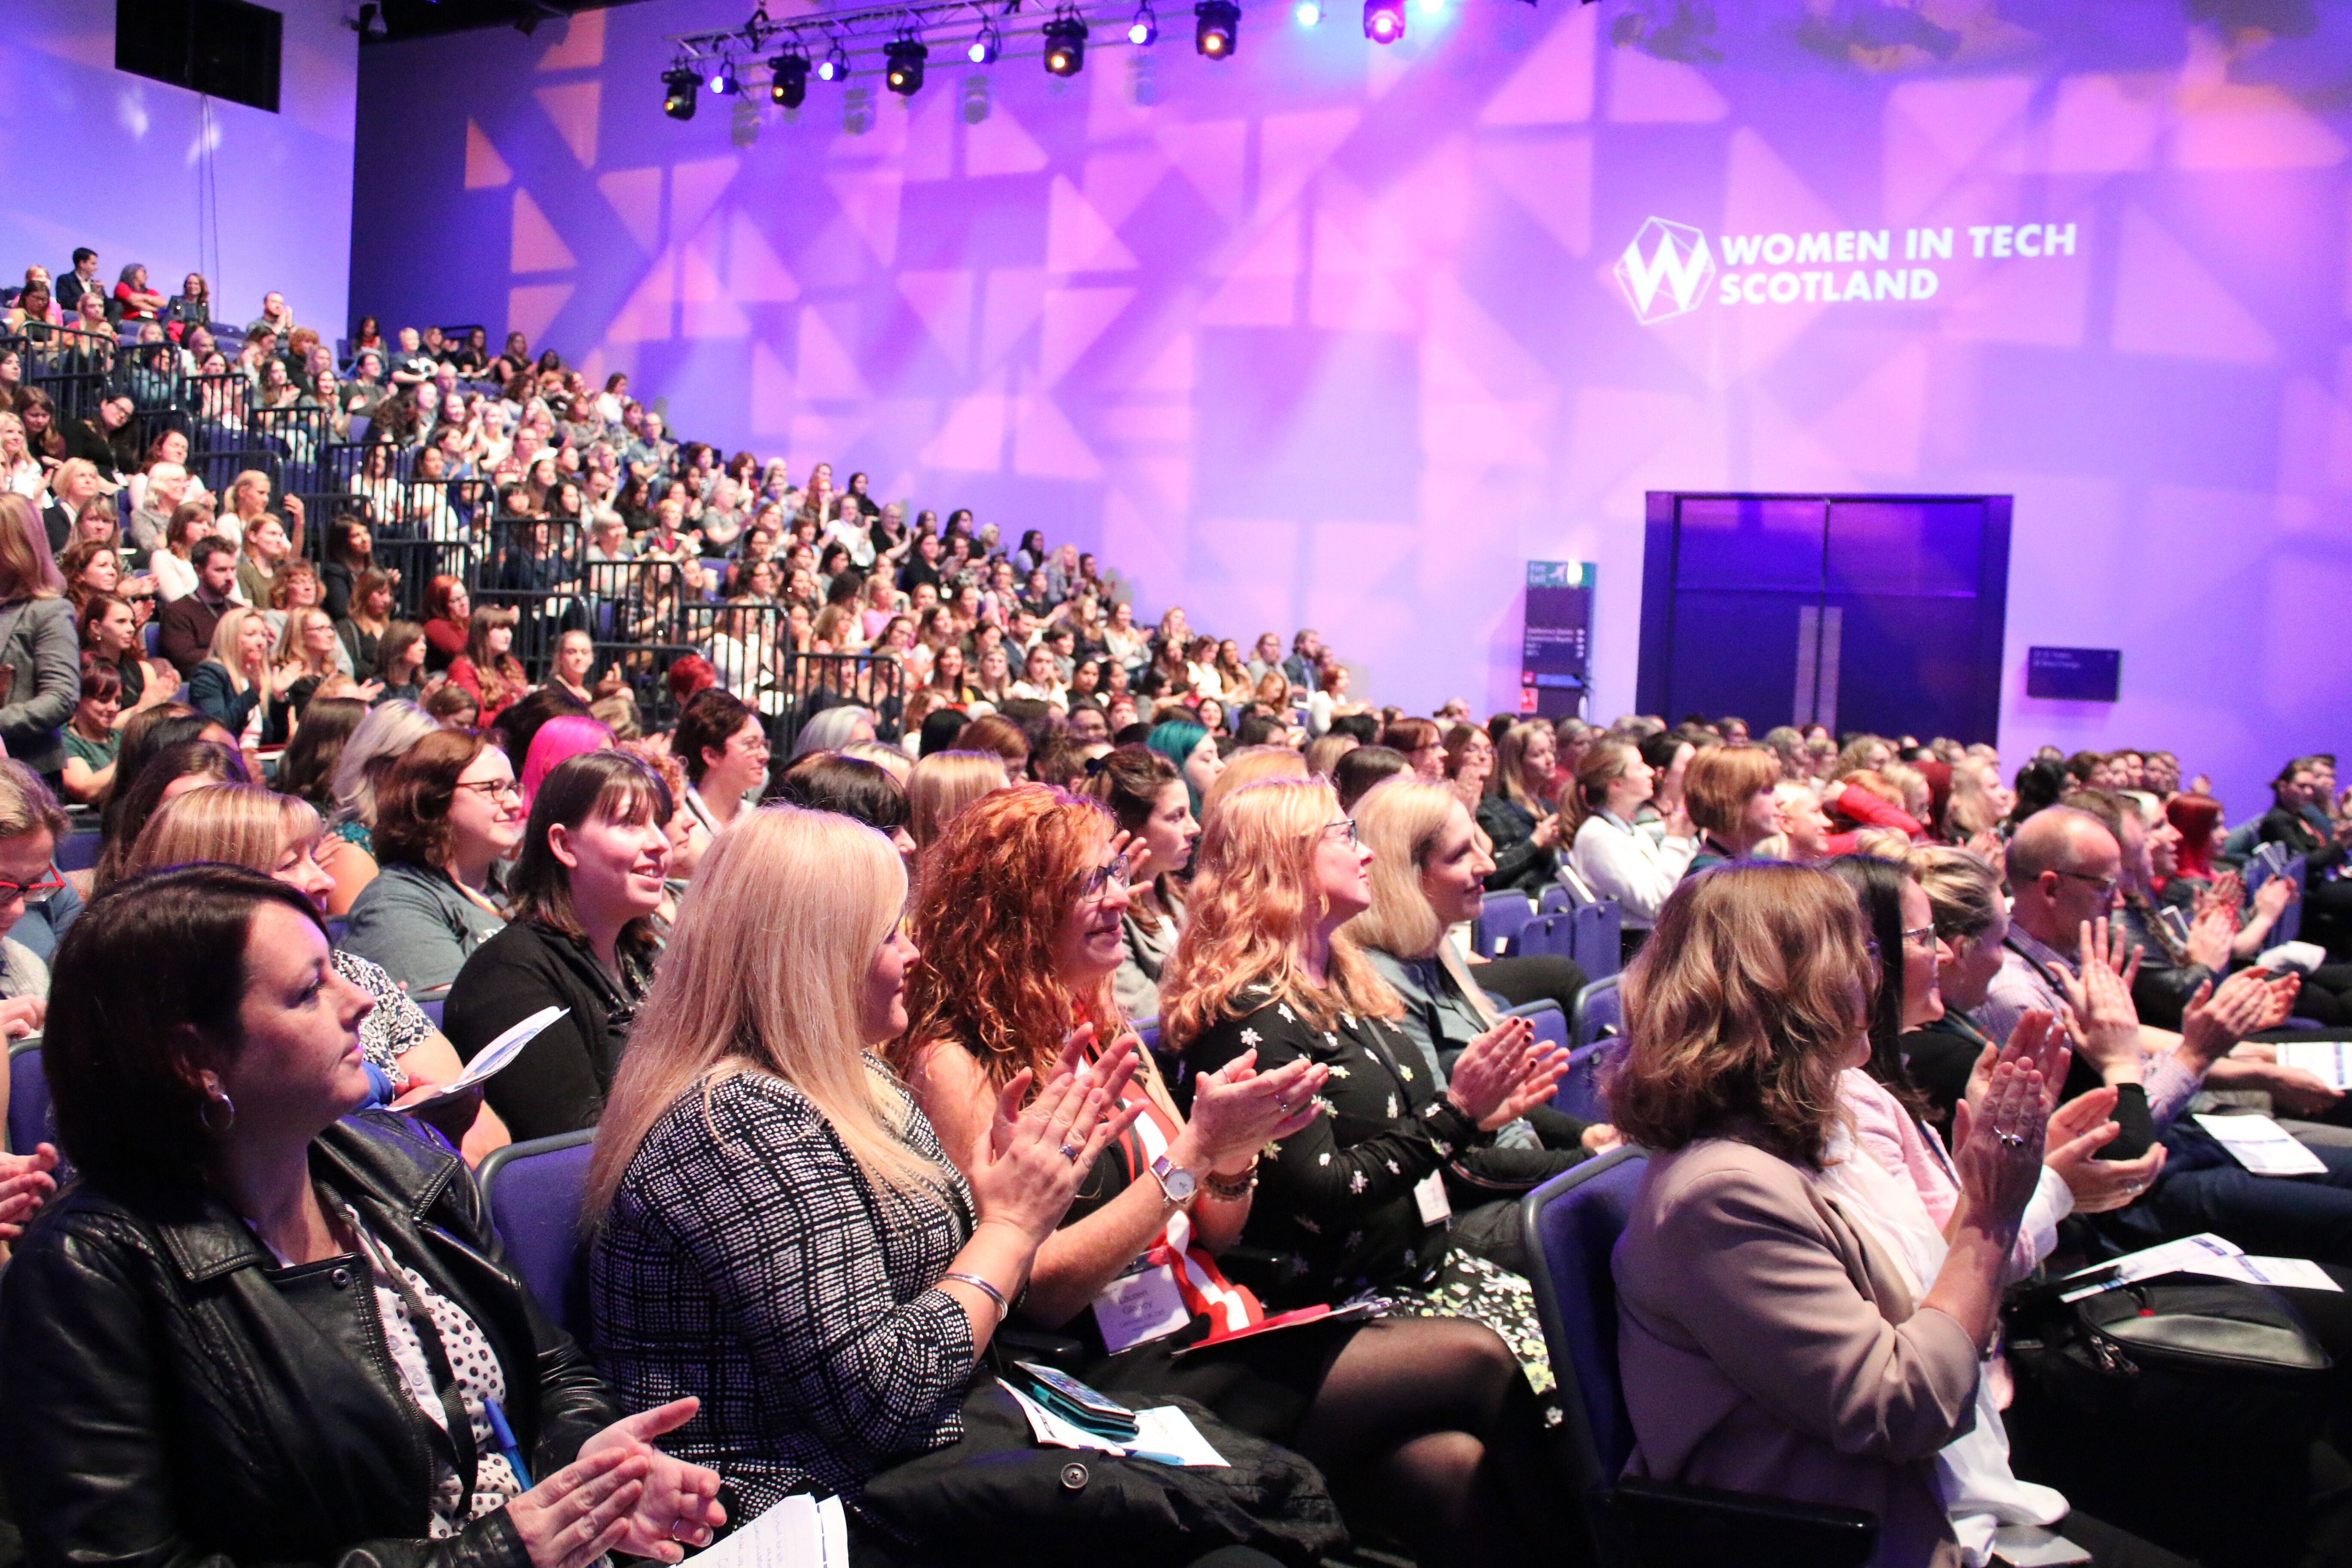 Women in Tech Scotland Audience